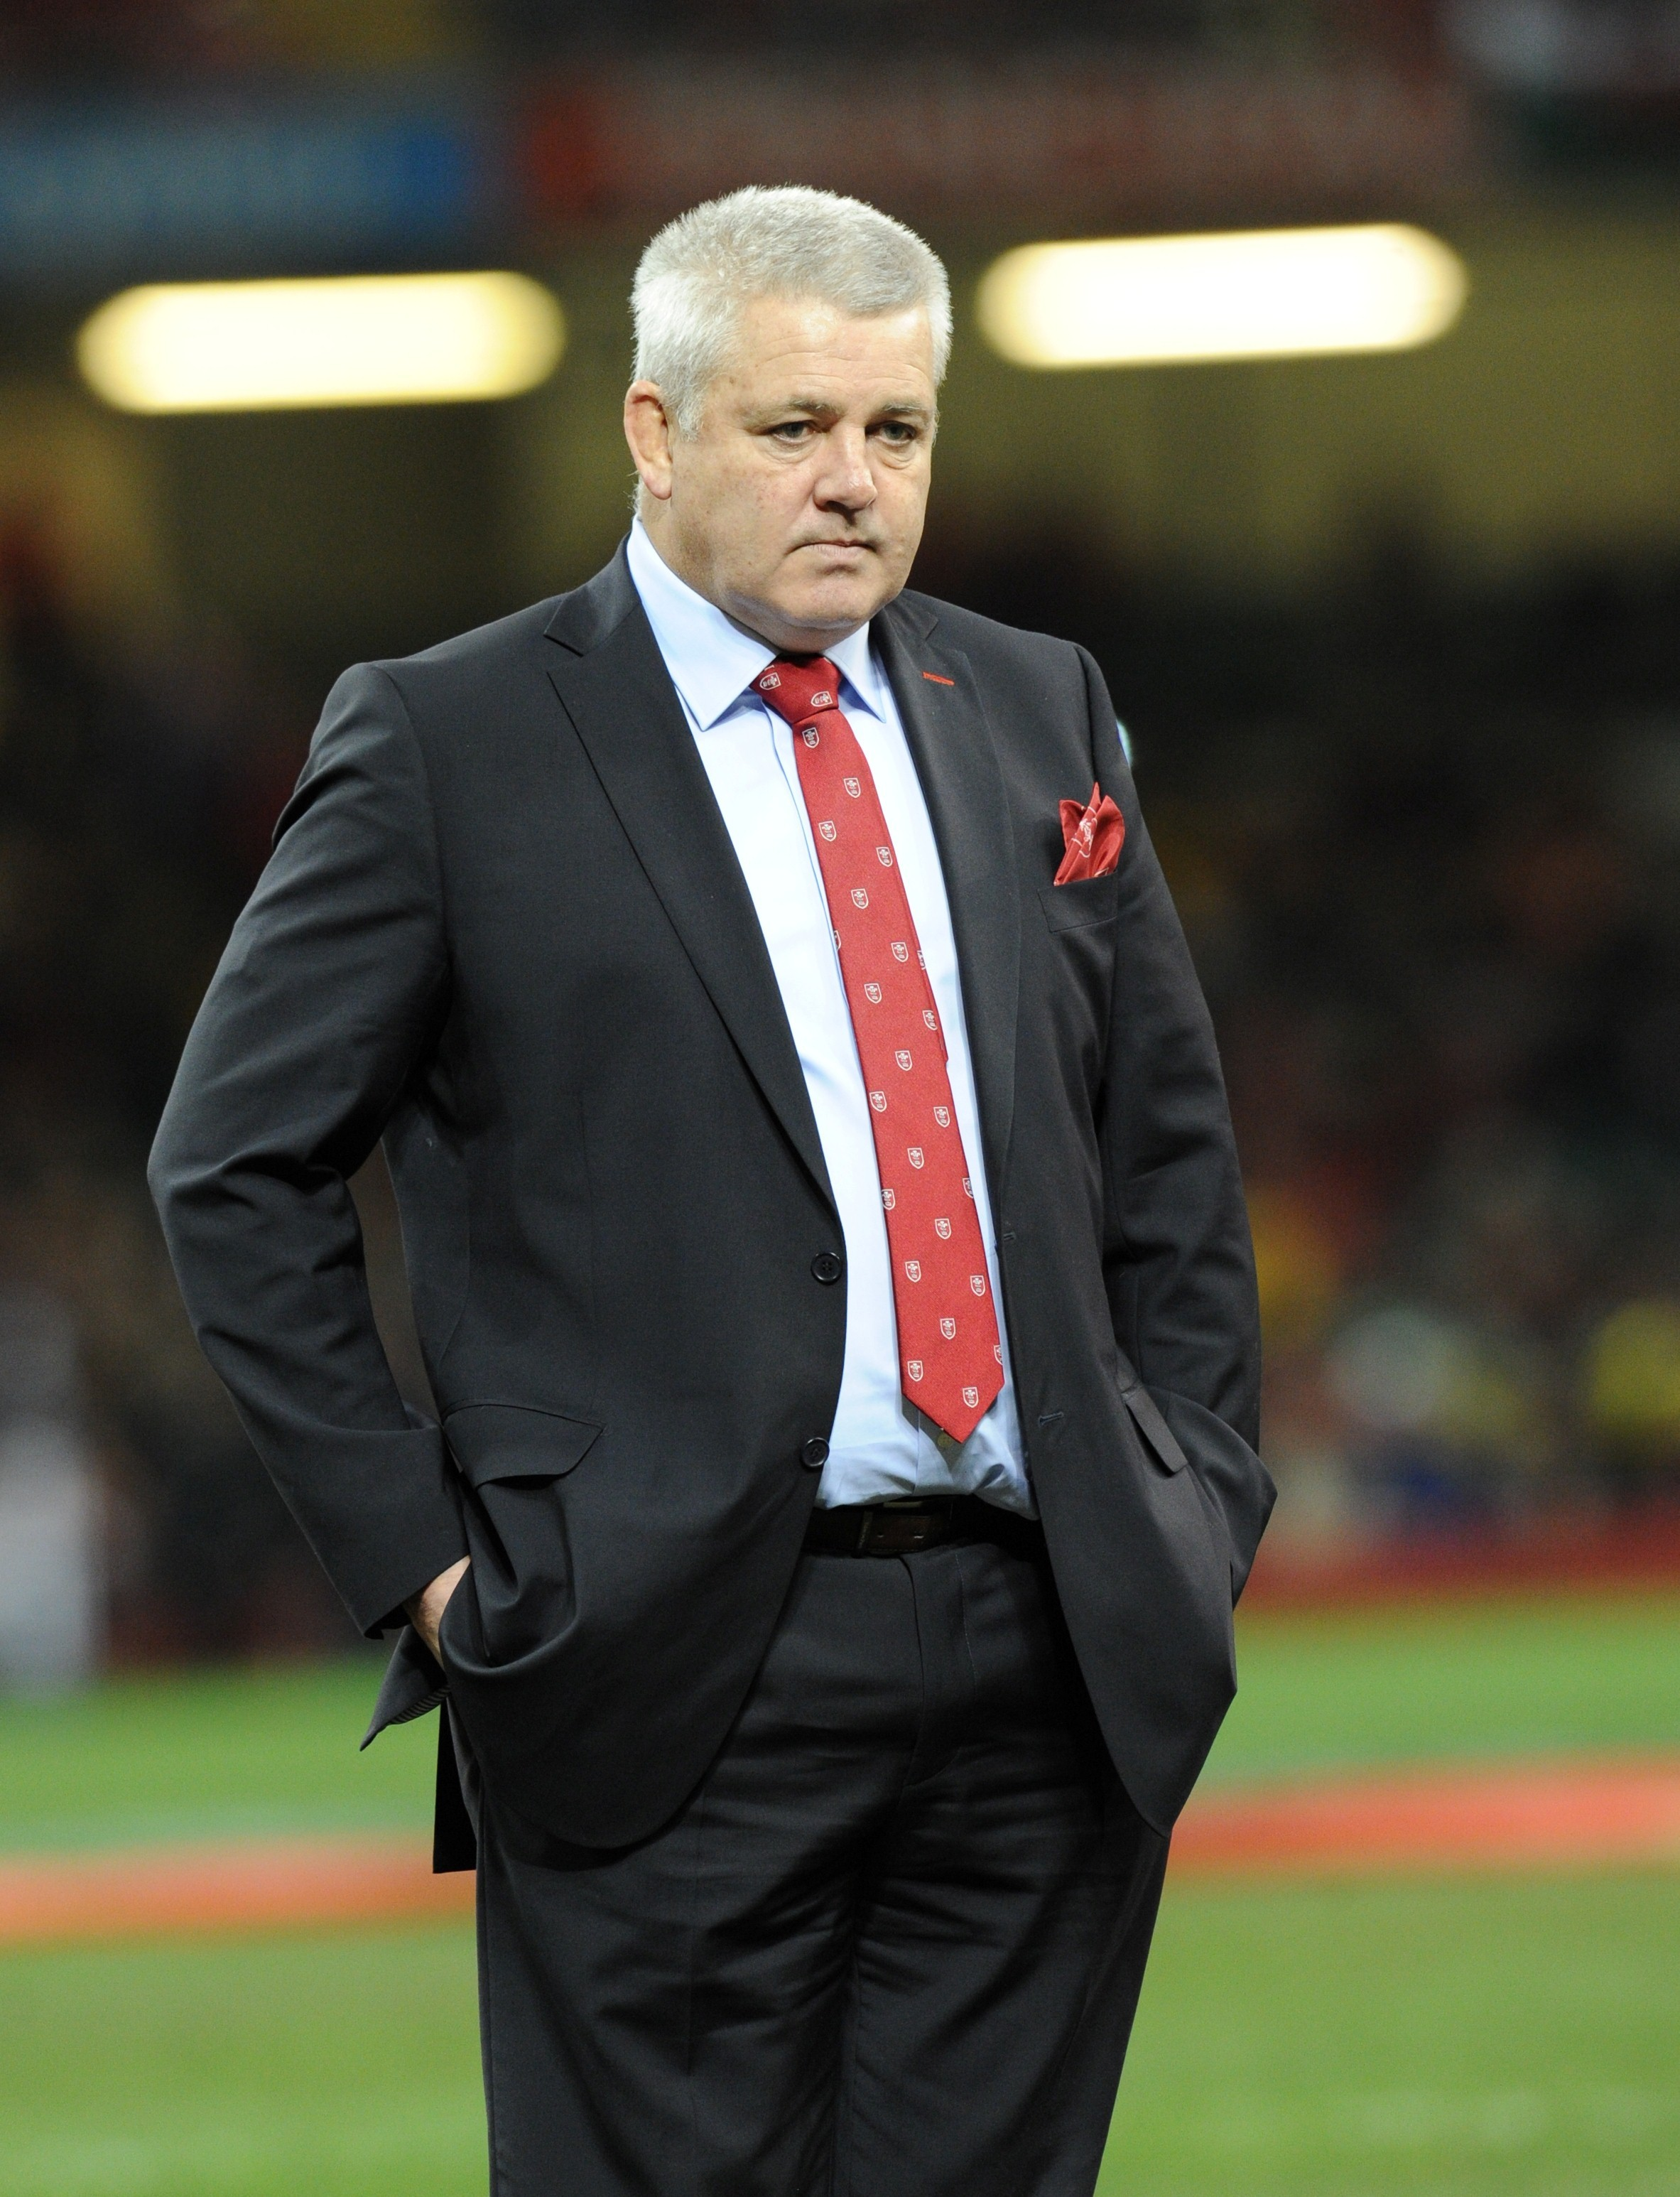 Wales' Six Nations win tops the Lions for coach of the year Warren Gatland